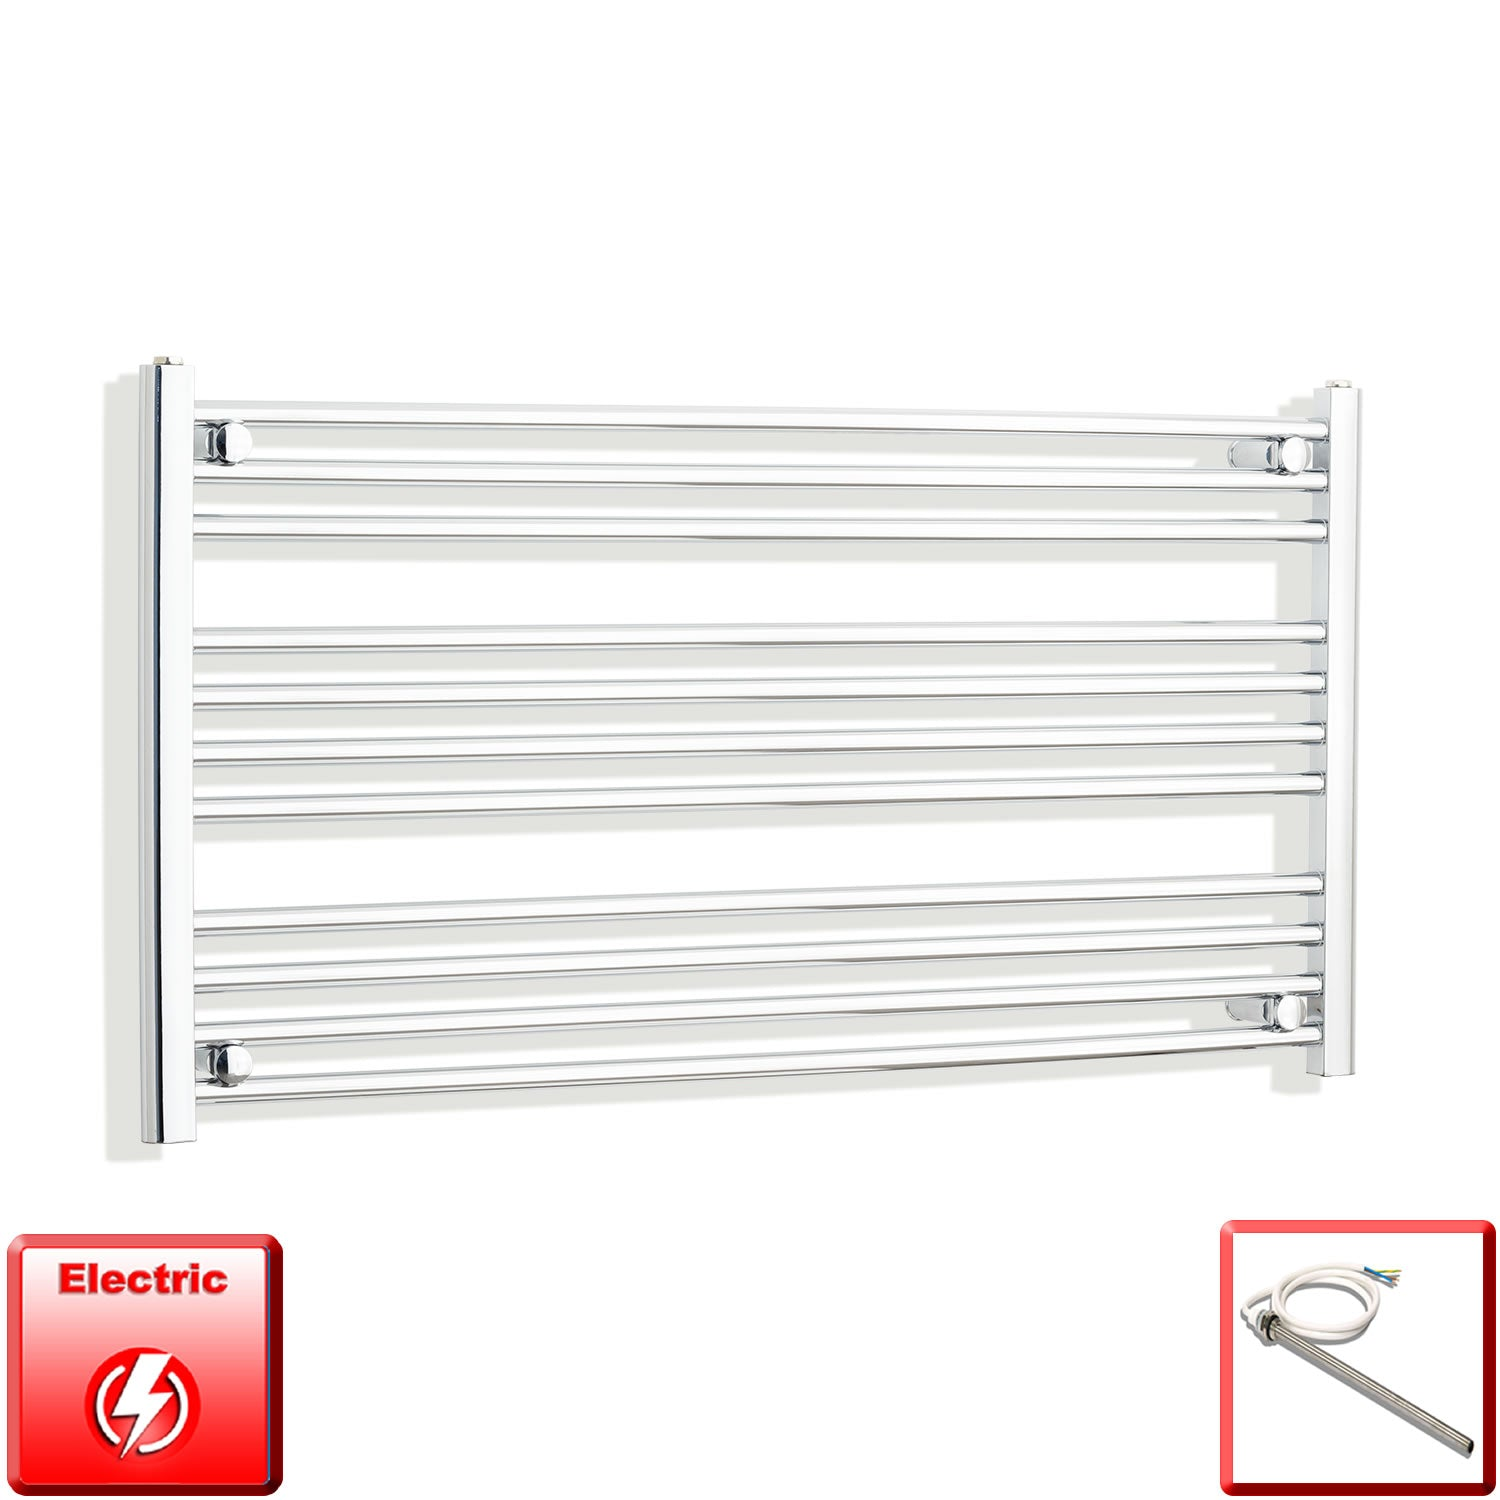 1300mm Wide 600mm High Flat Chrome Pre-Filled Electric Heated Towel Rail Radiator HTR,Single Heat Element